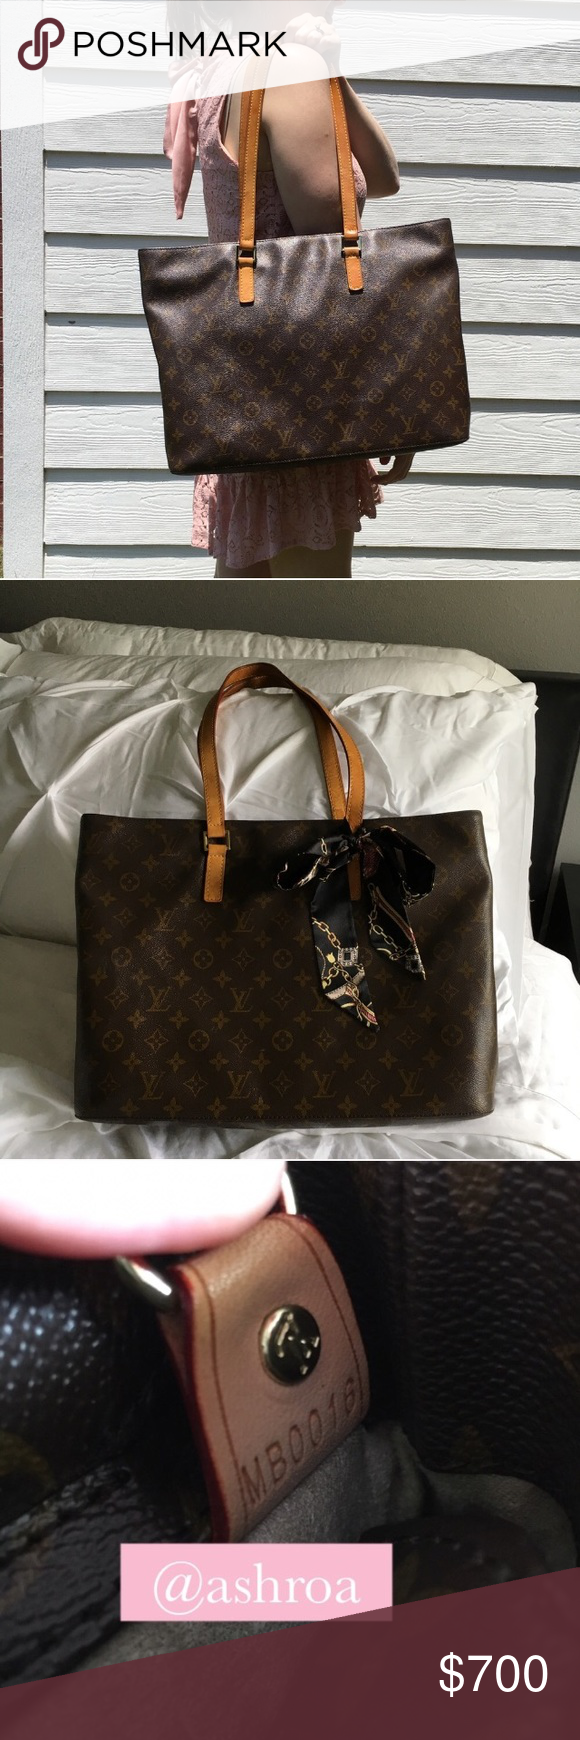 Louis Vuitton Luco Tote (Retired) This beautiful preloved Louis Vuitton Luco  is the perfect 057762aa9b6f6